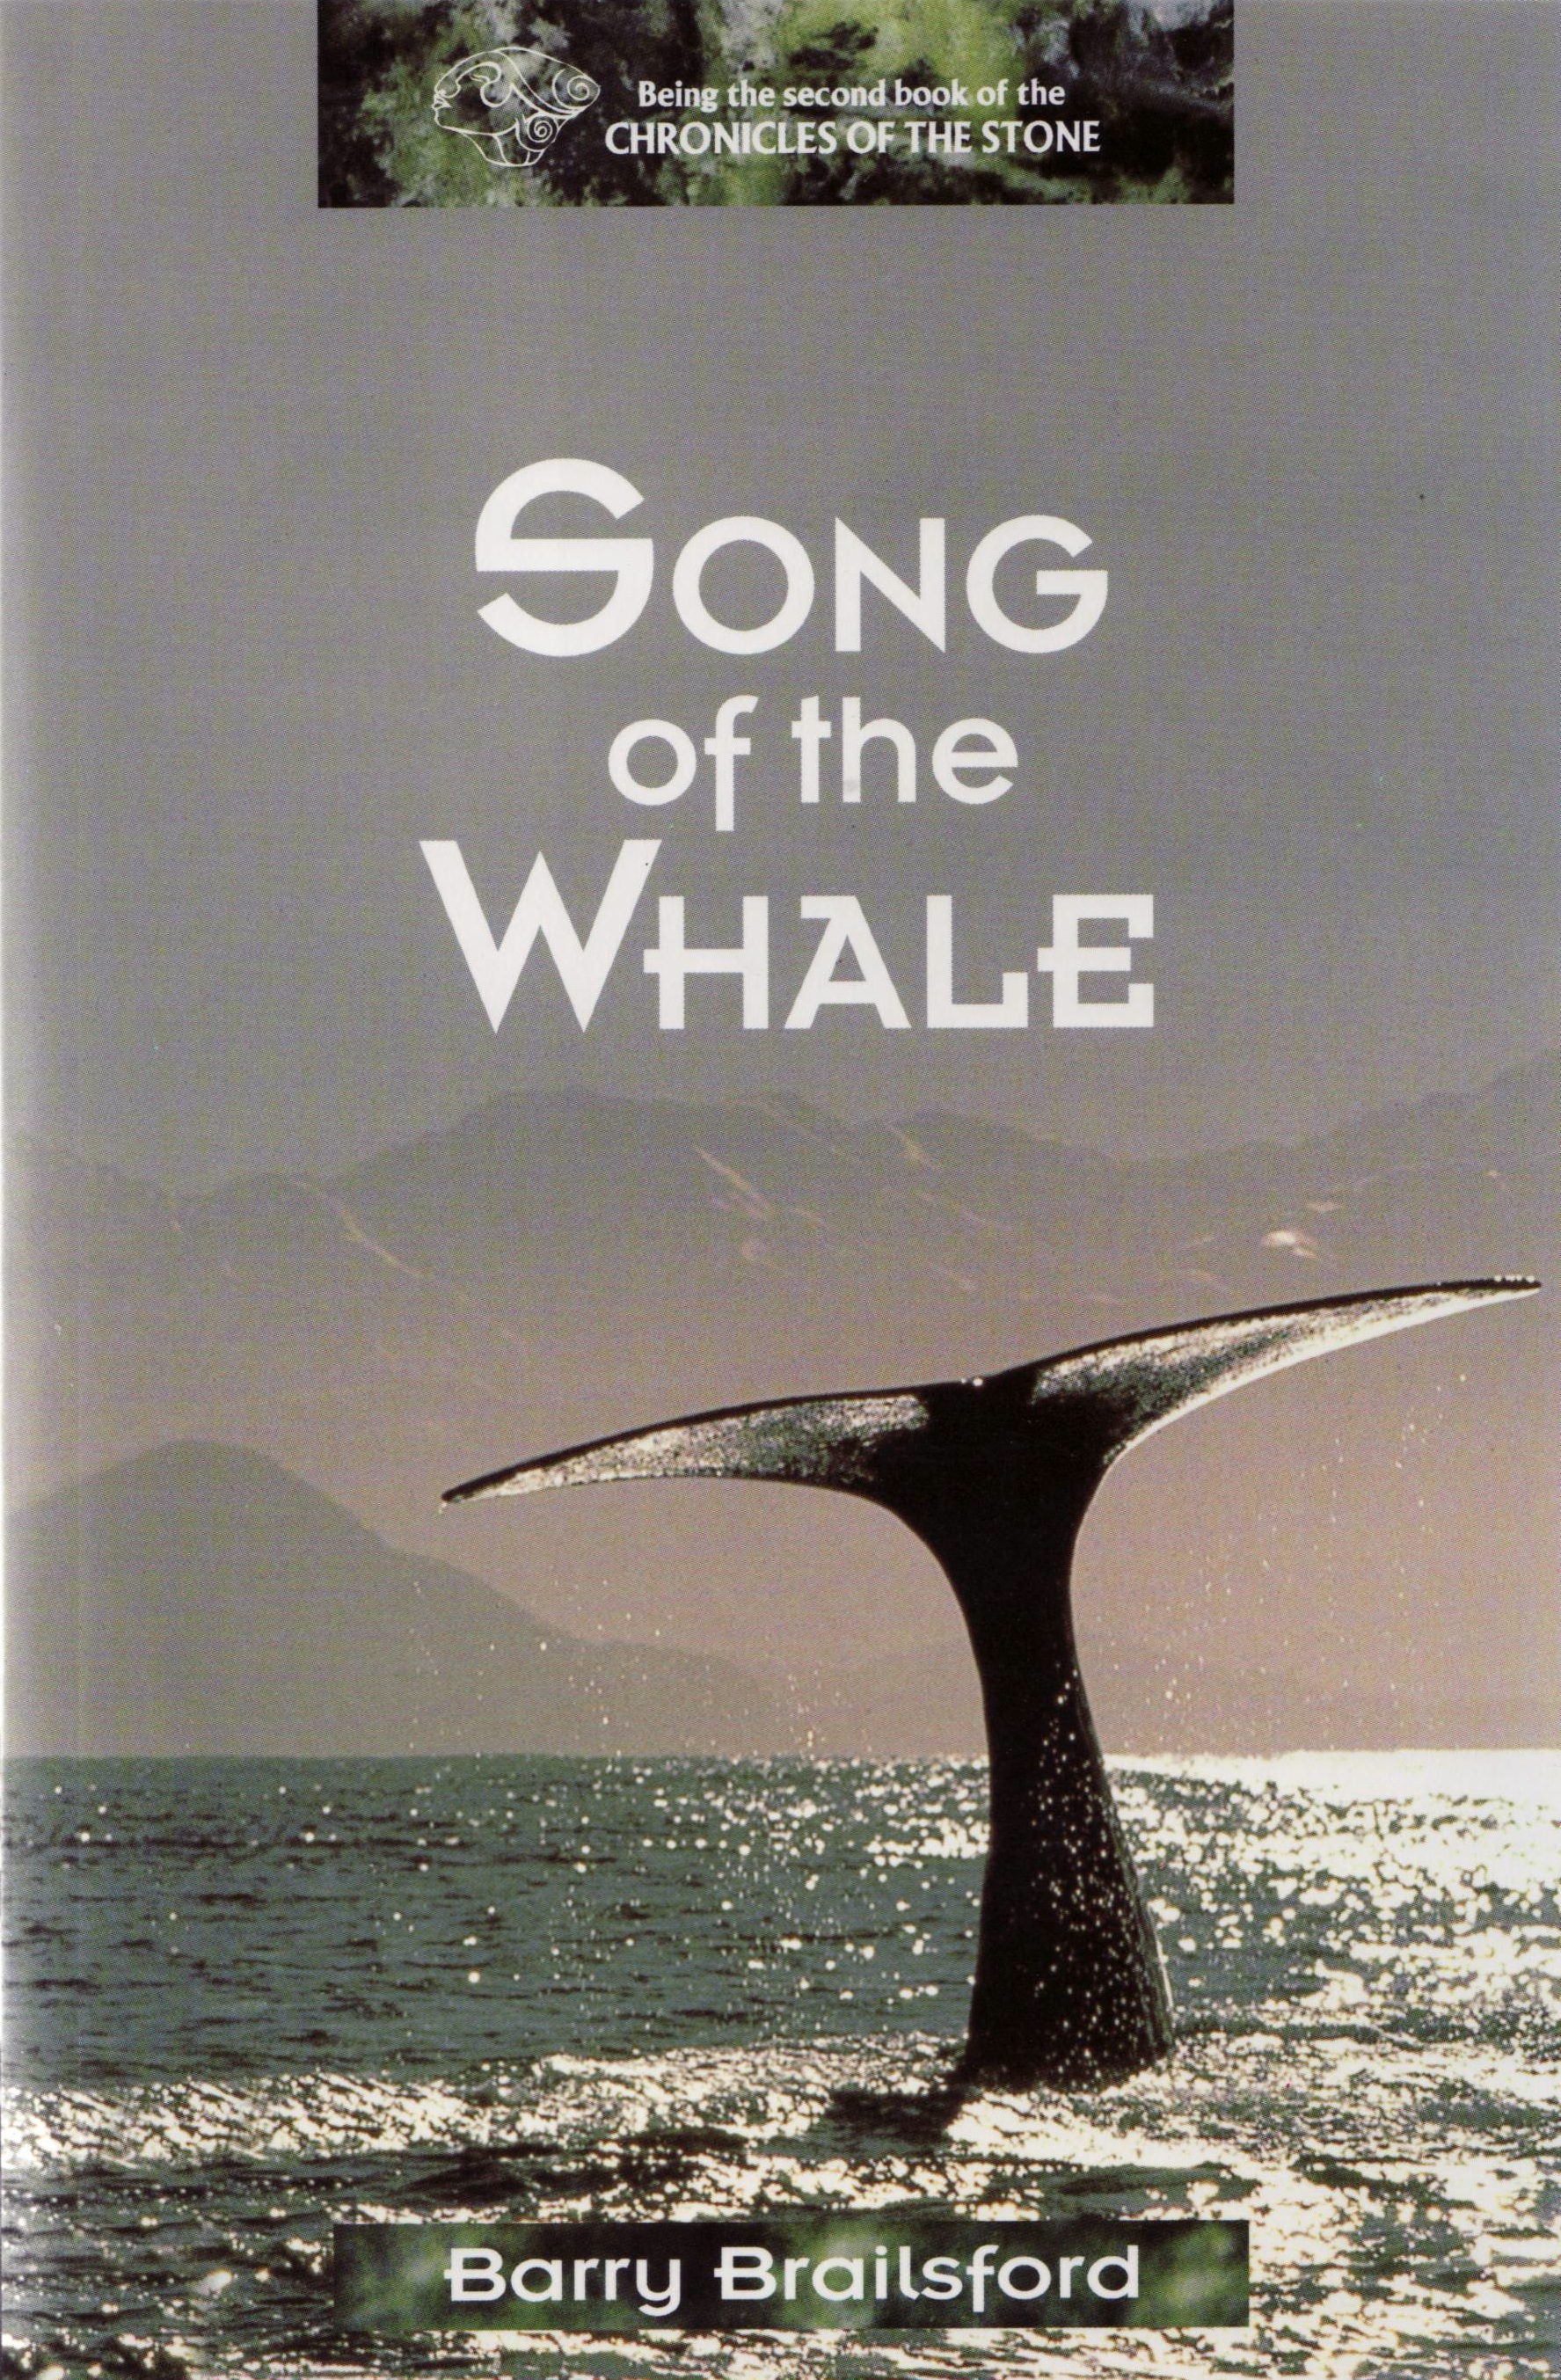 a literary analysis of package for the distant future and the song of the whale Jonah summary by jay smith the book of jonah is narrative history and a prophetic oracle the prophet jonah wrote it approximately 785-760 bc before assyria.